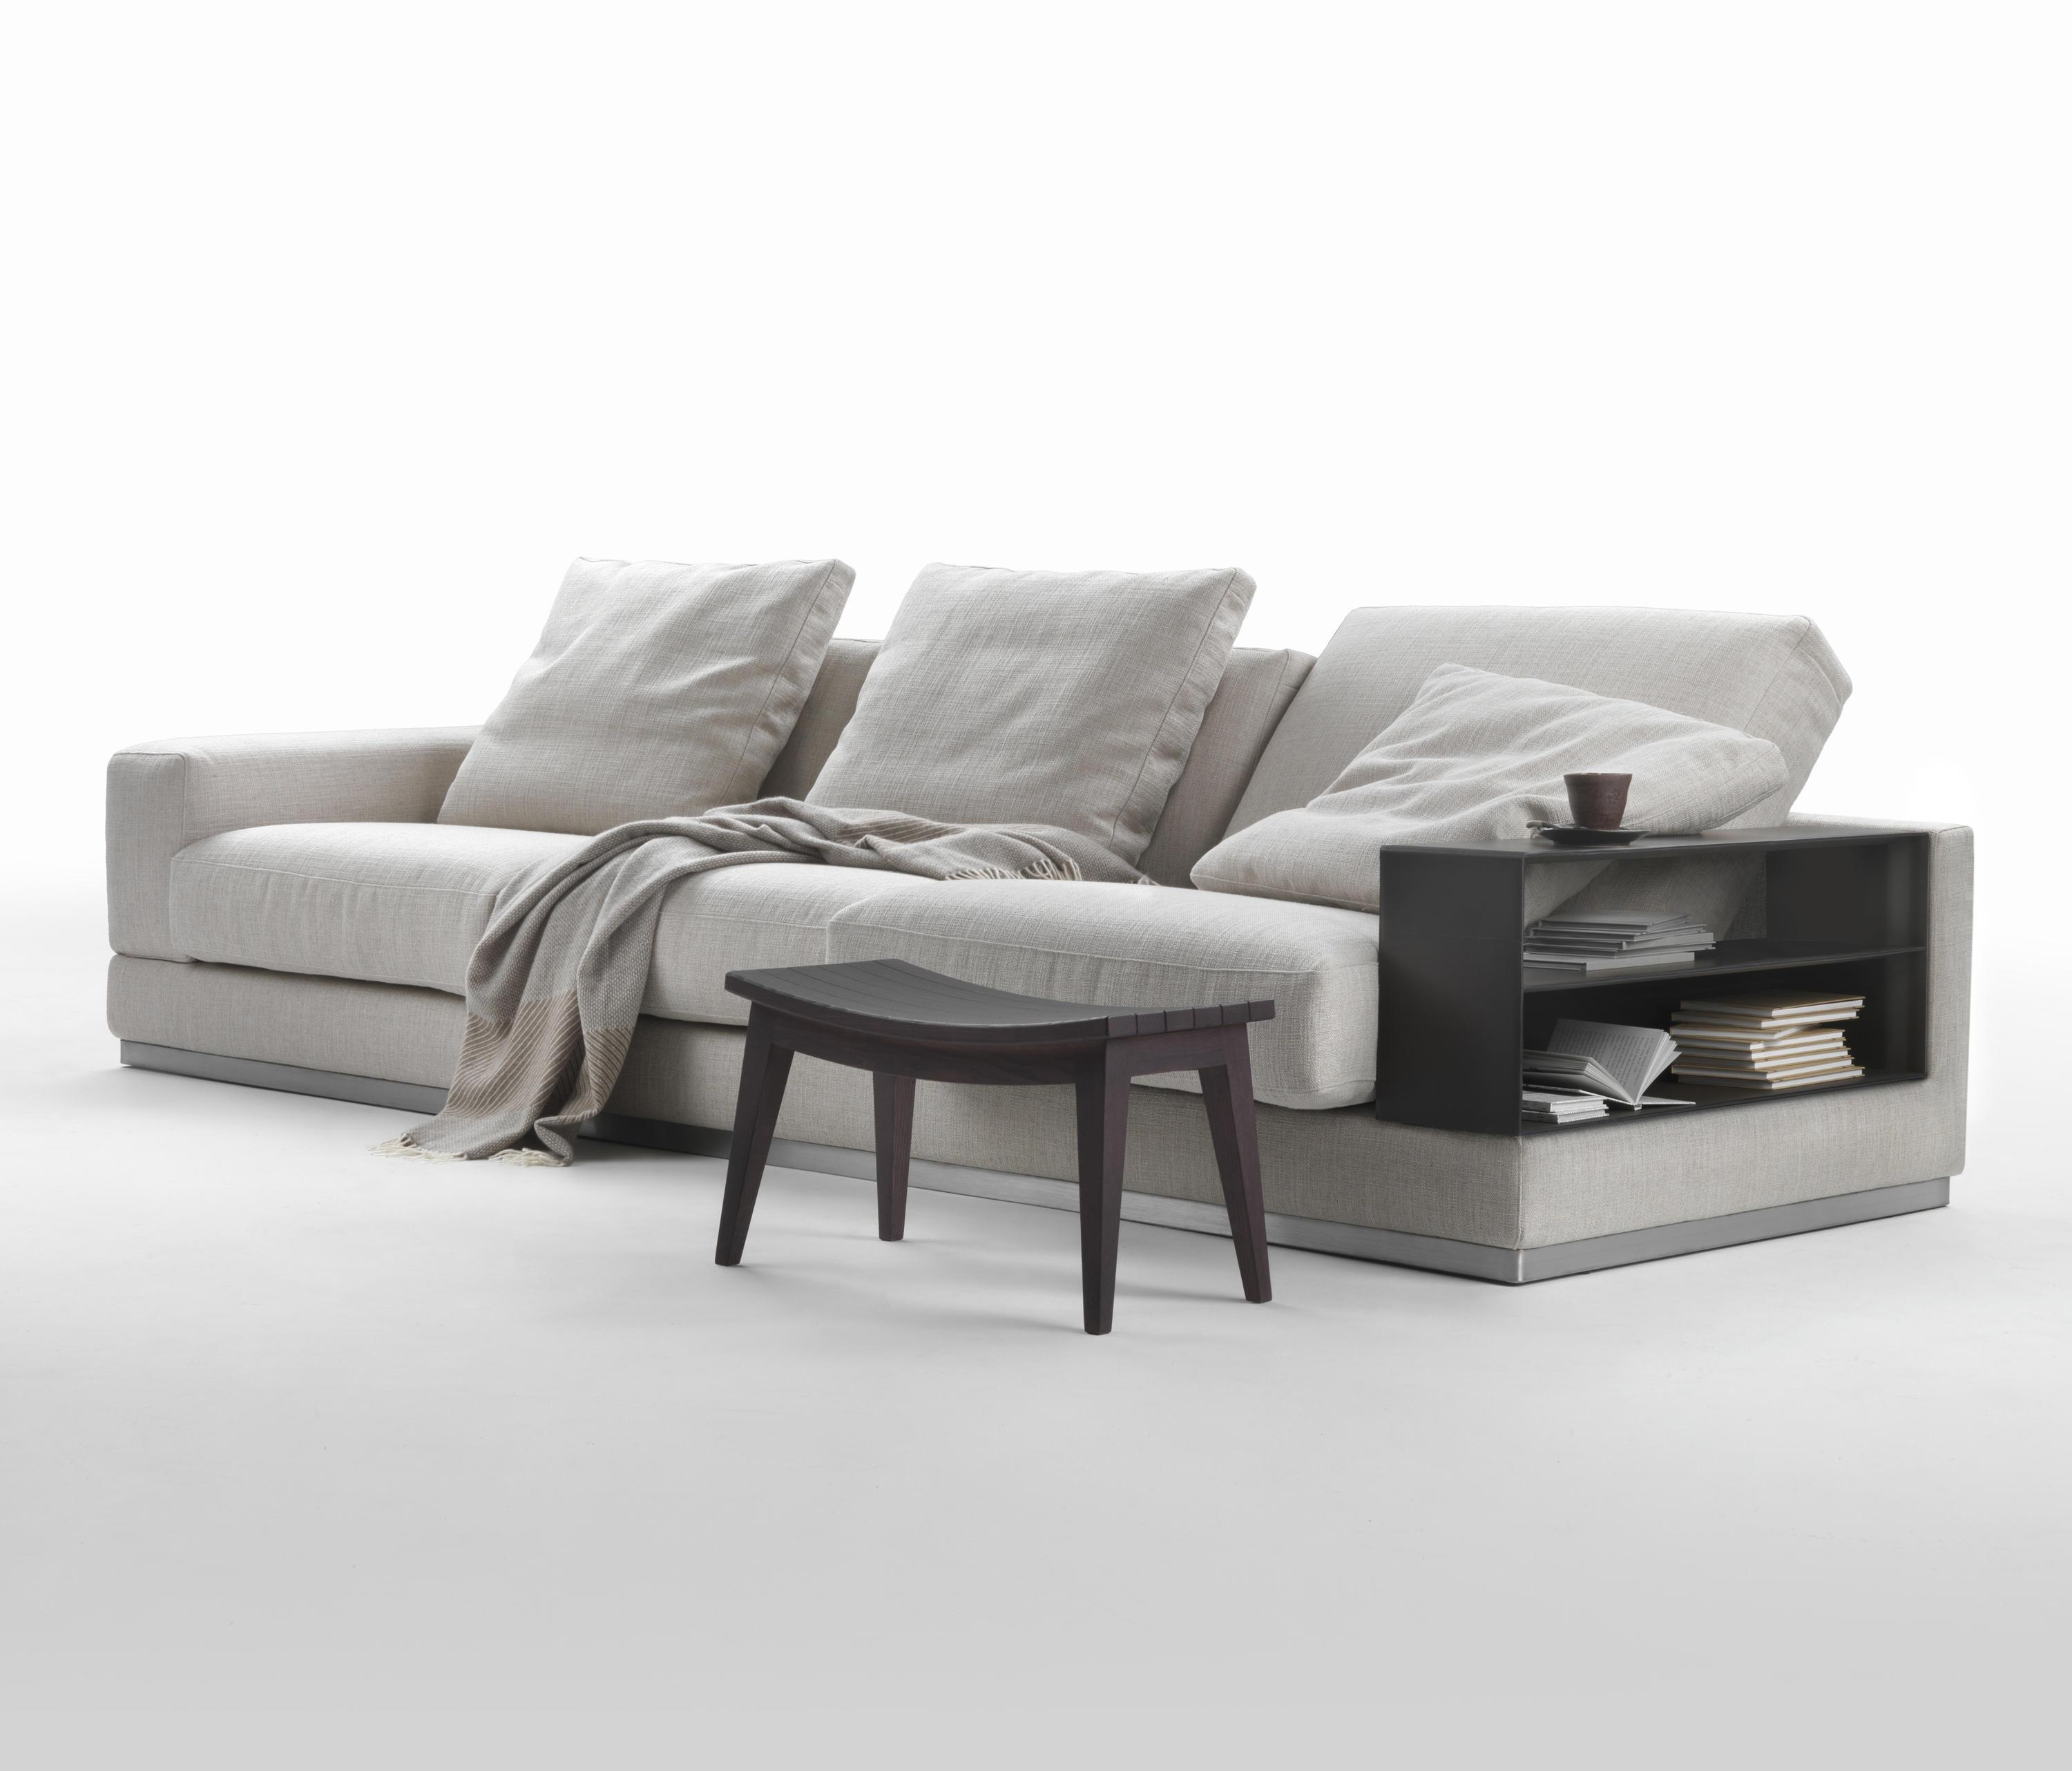 Big Bob – Modular Seating Systems From Flexform | Architonic Regarding Flexform Sofas (Image 1 of 20)